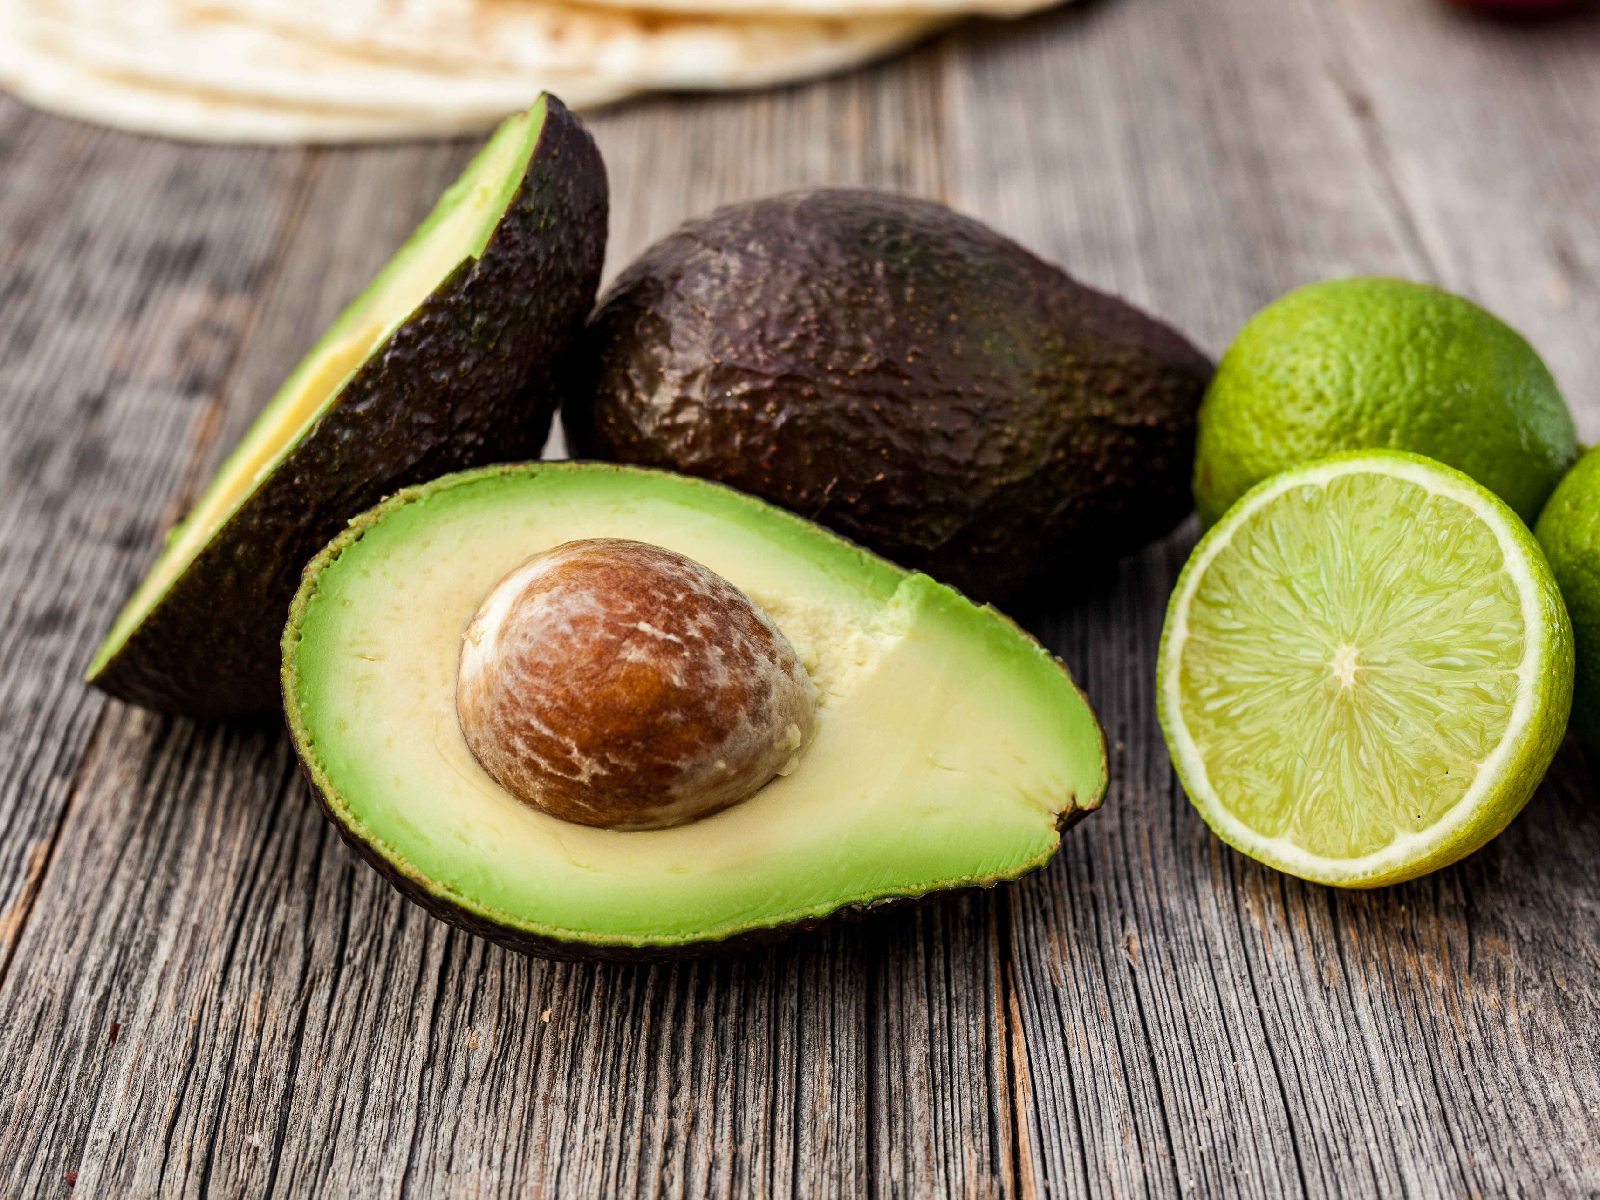 Avocado Prices Are Nearly Double What They Were This Time Last Year